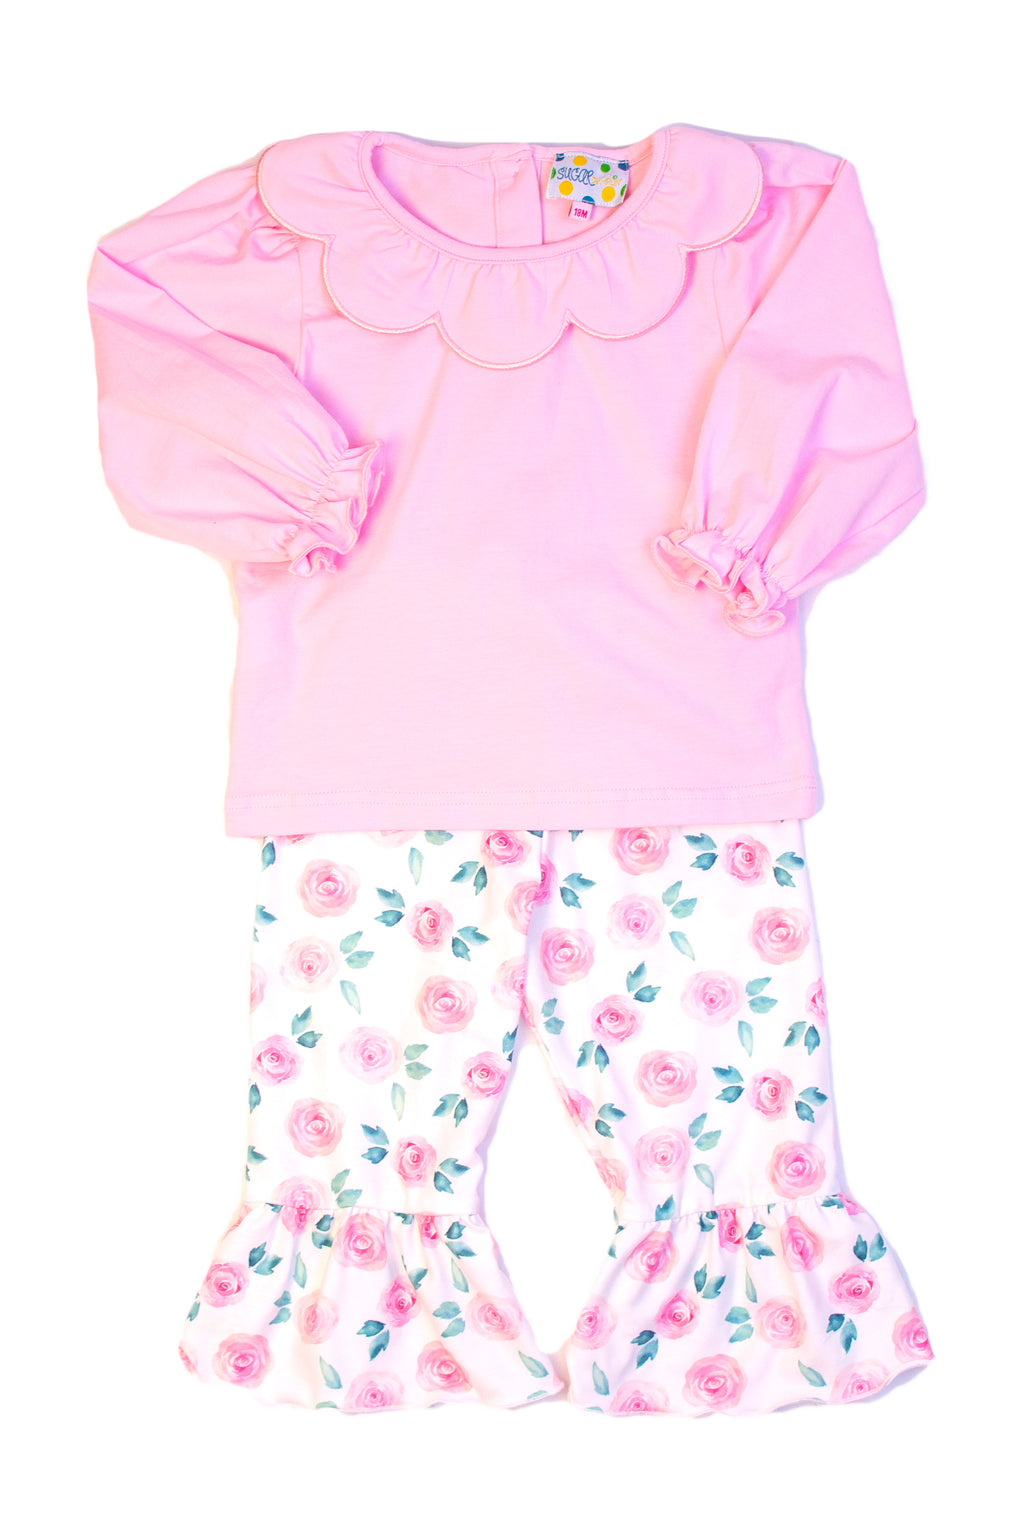 Girls Pink Knit/Floral Scalloped Collar Pant Set